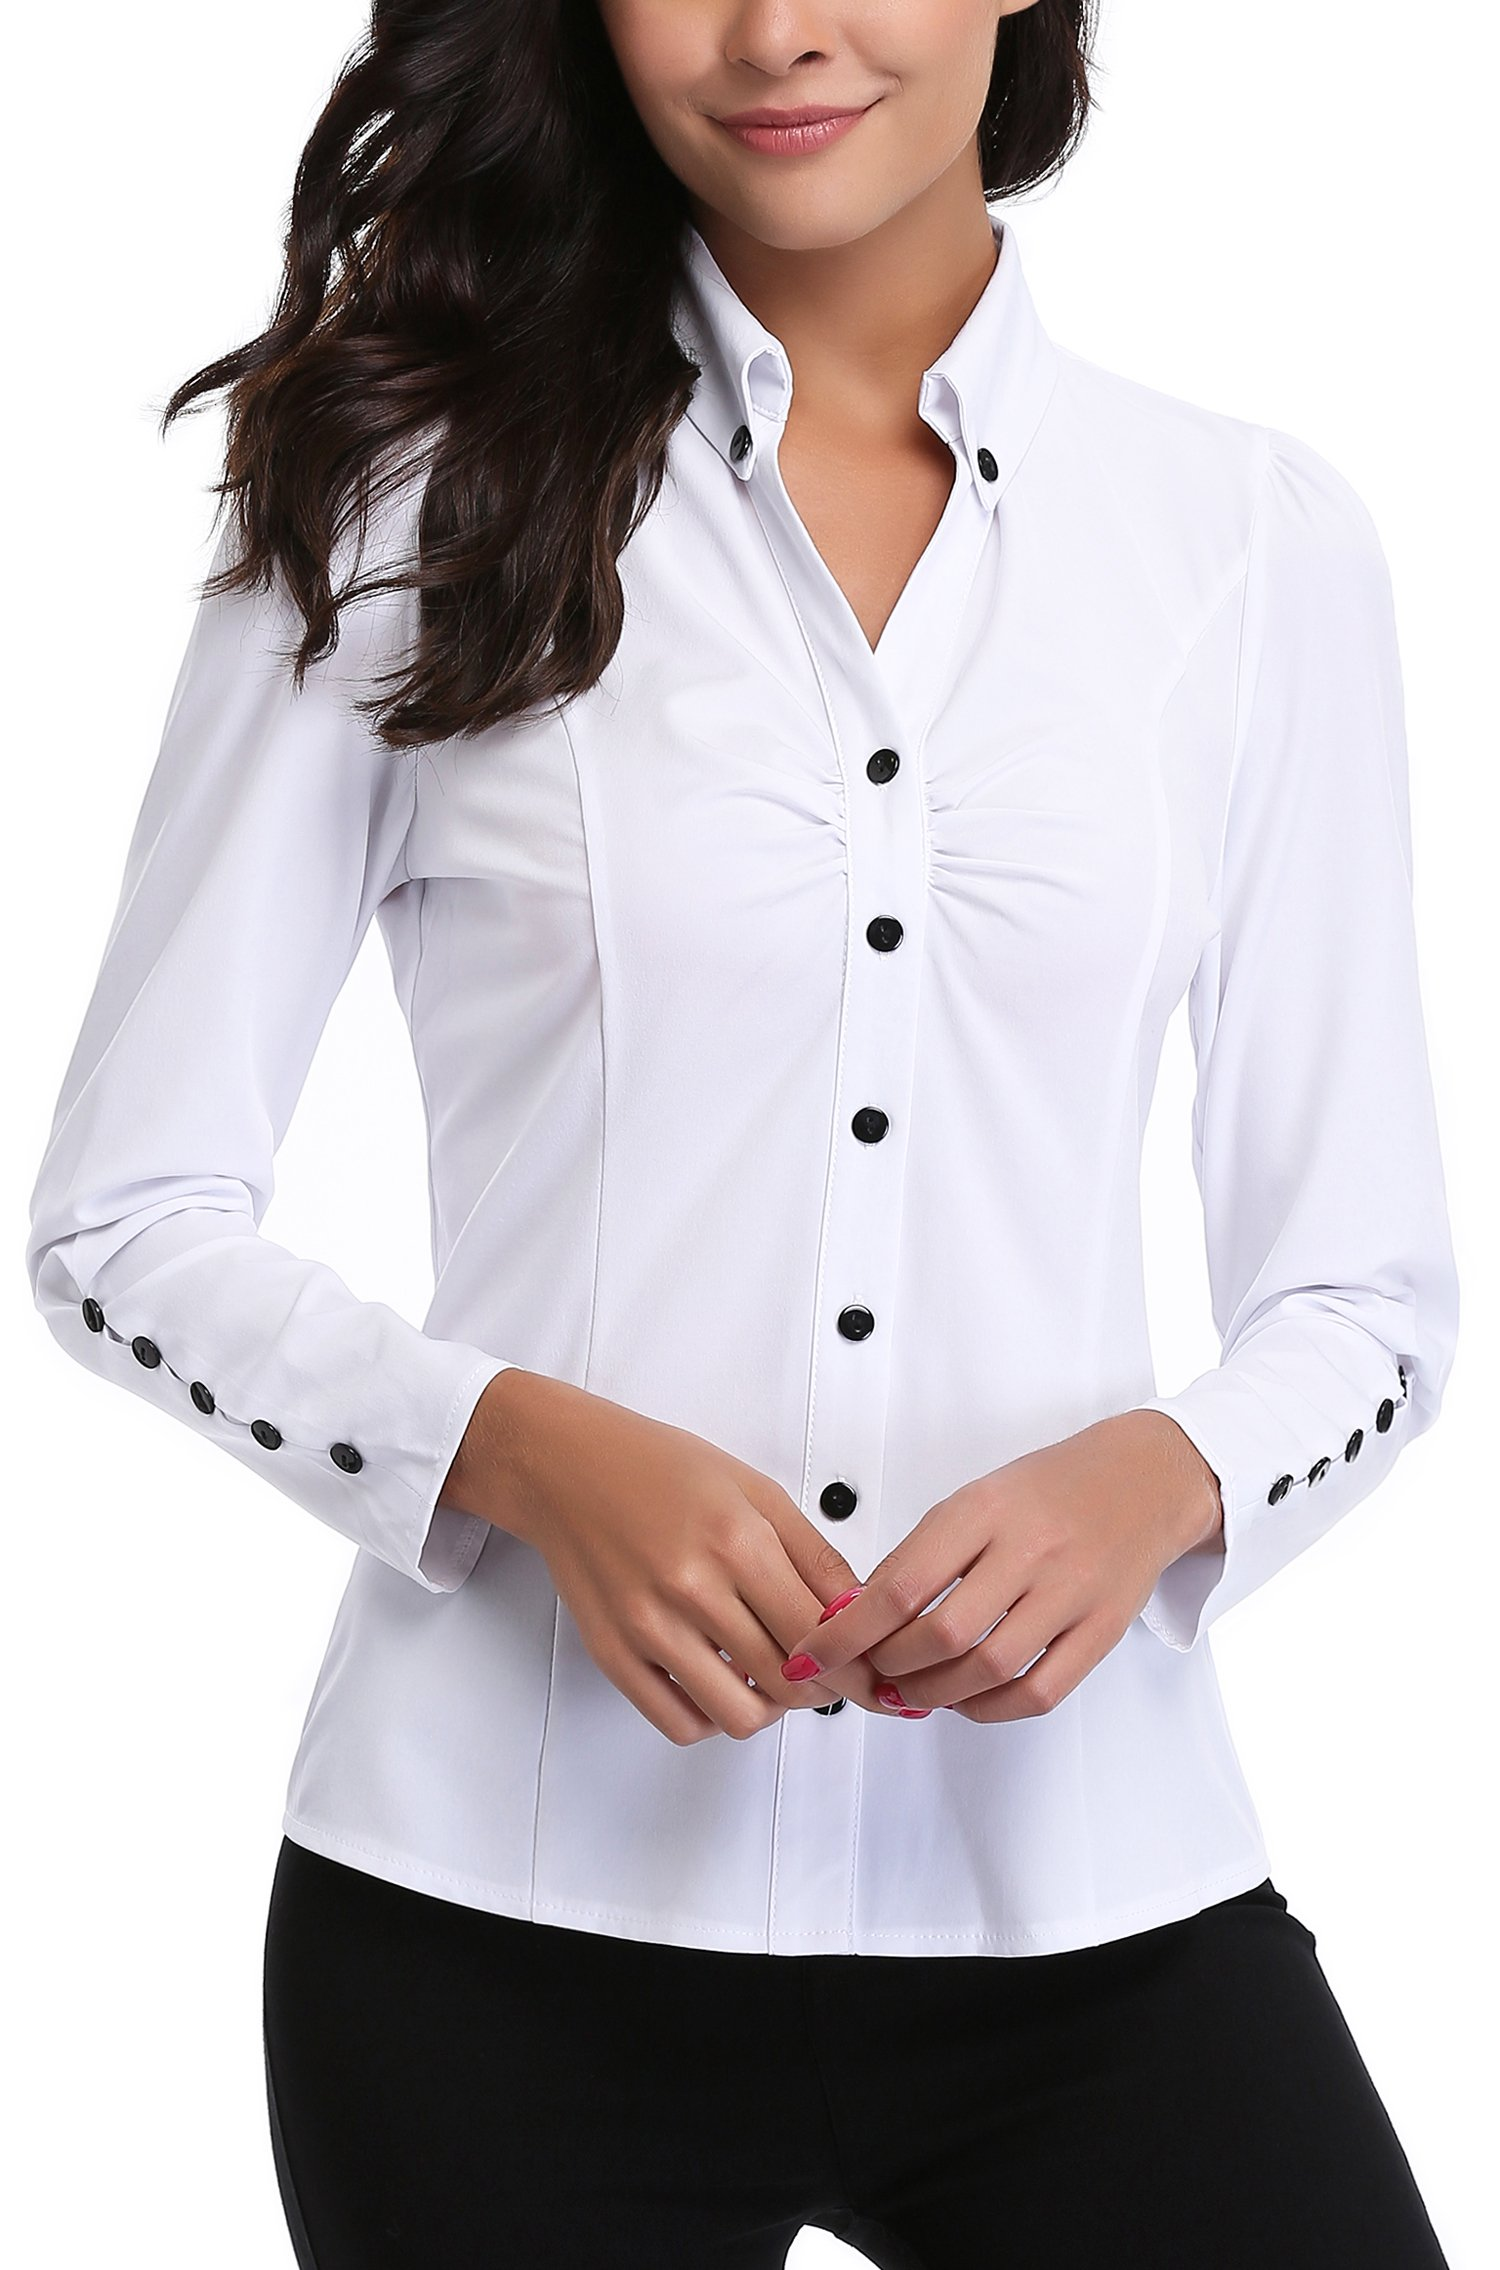 MISS MOLY Women's White Button Down Shirt V Neck Collar Puff Sleeve Office M by MISS MOLY (Image #1)